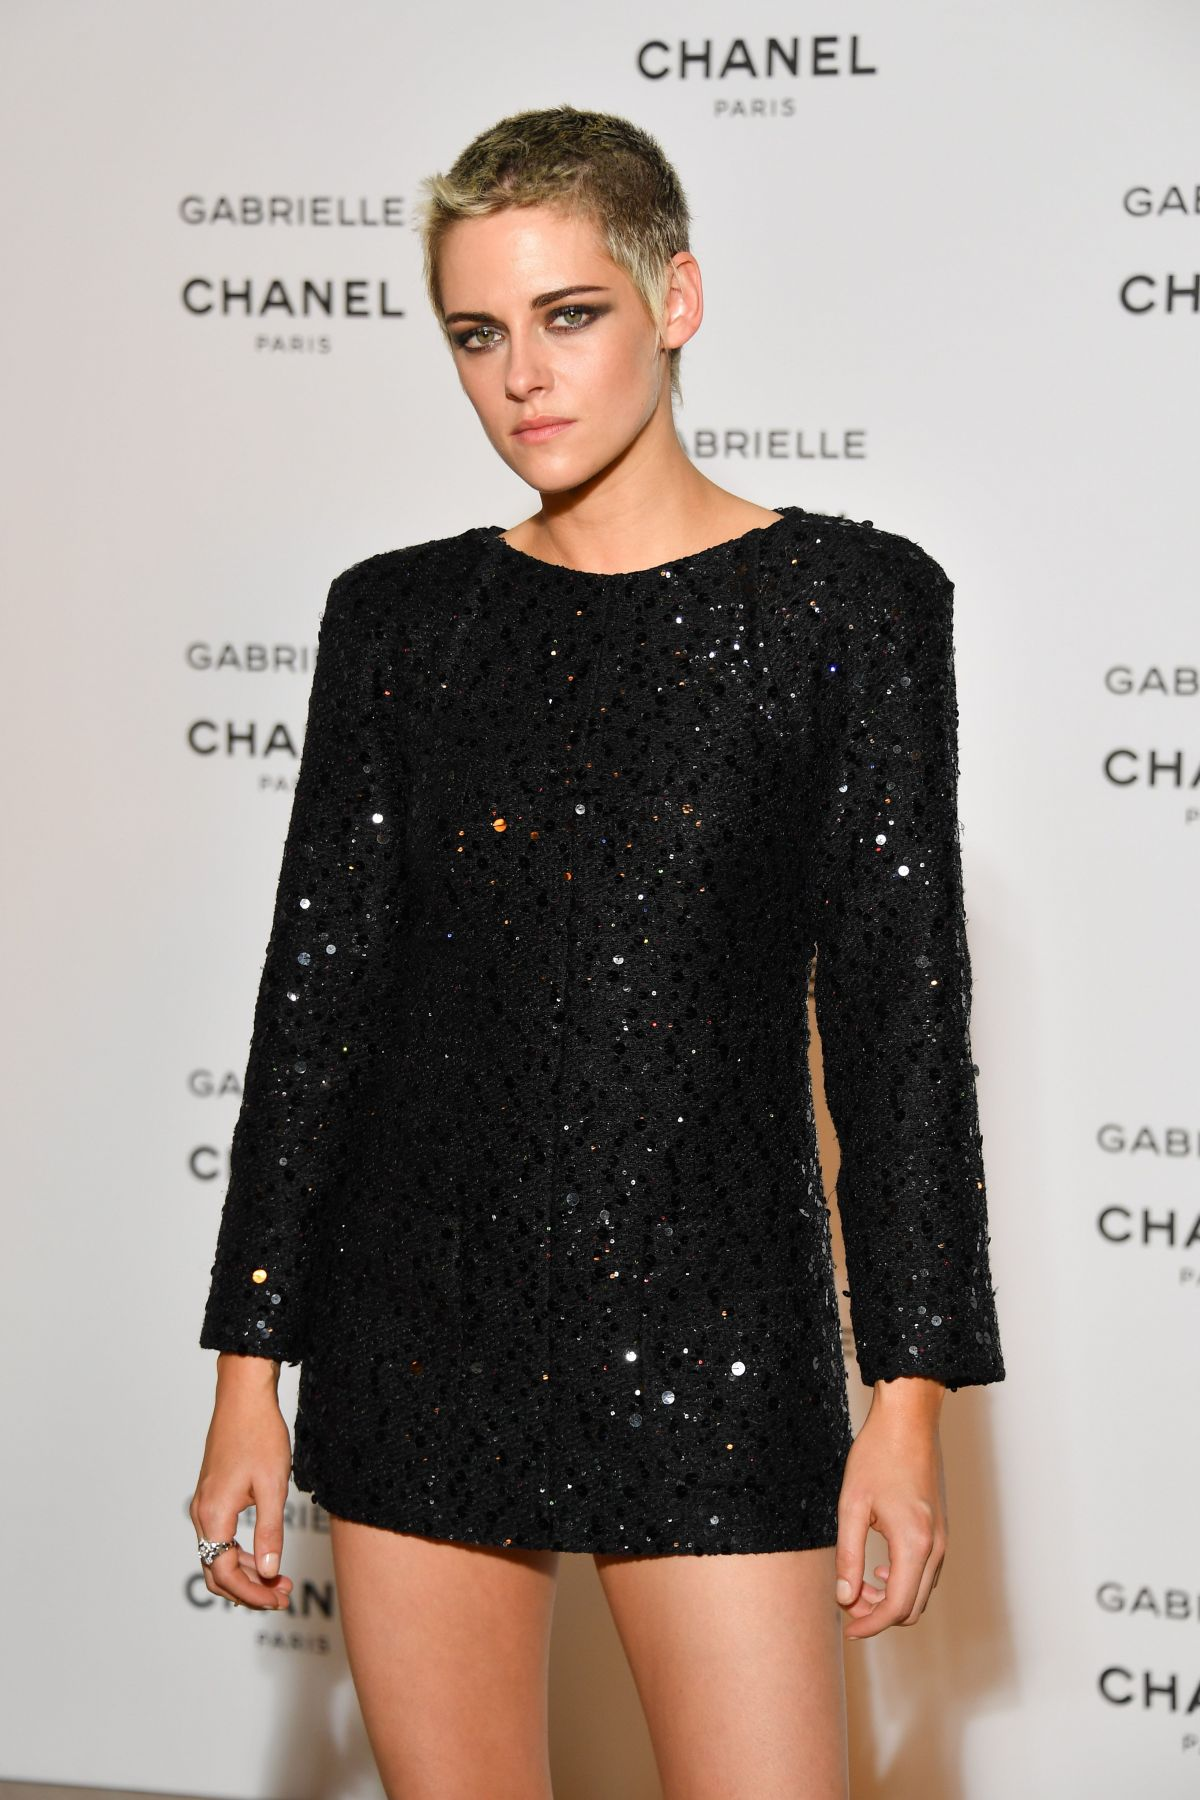 kristen-stewart-at-chanel-gabrielle-perfume-launch-party-n-paris-07-04-2017_1